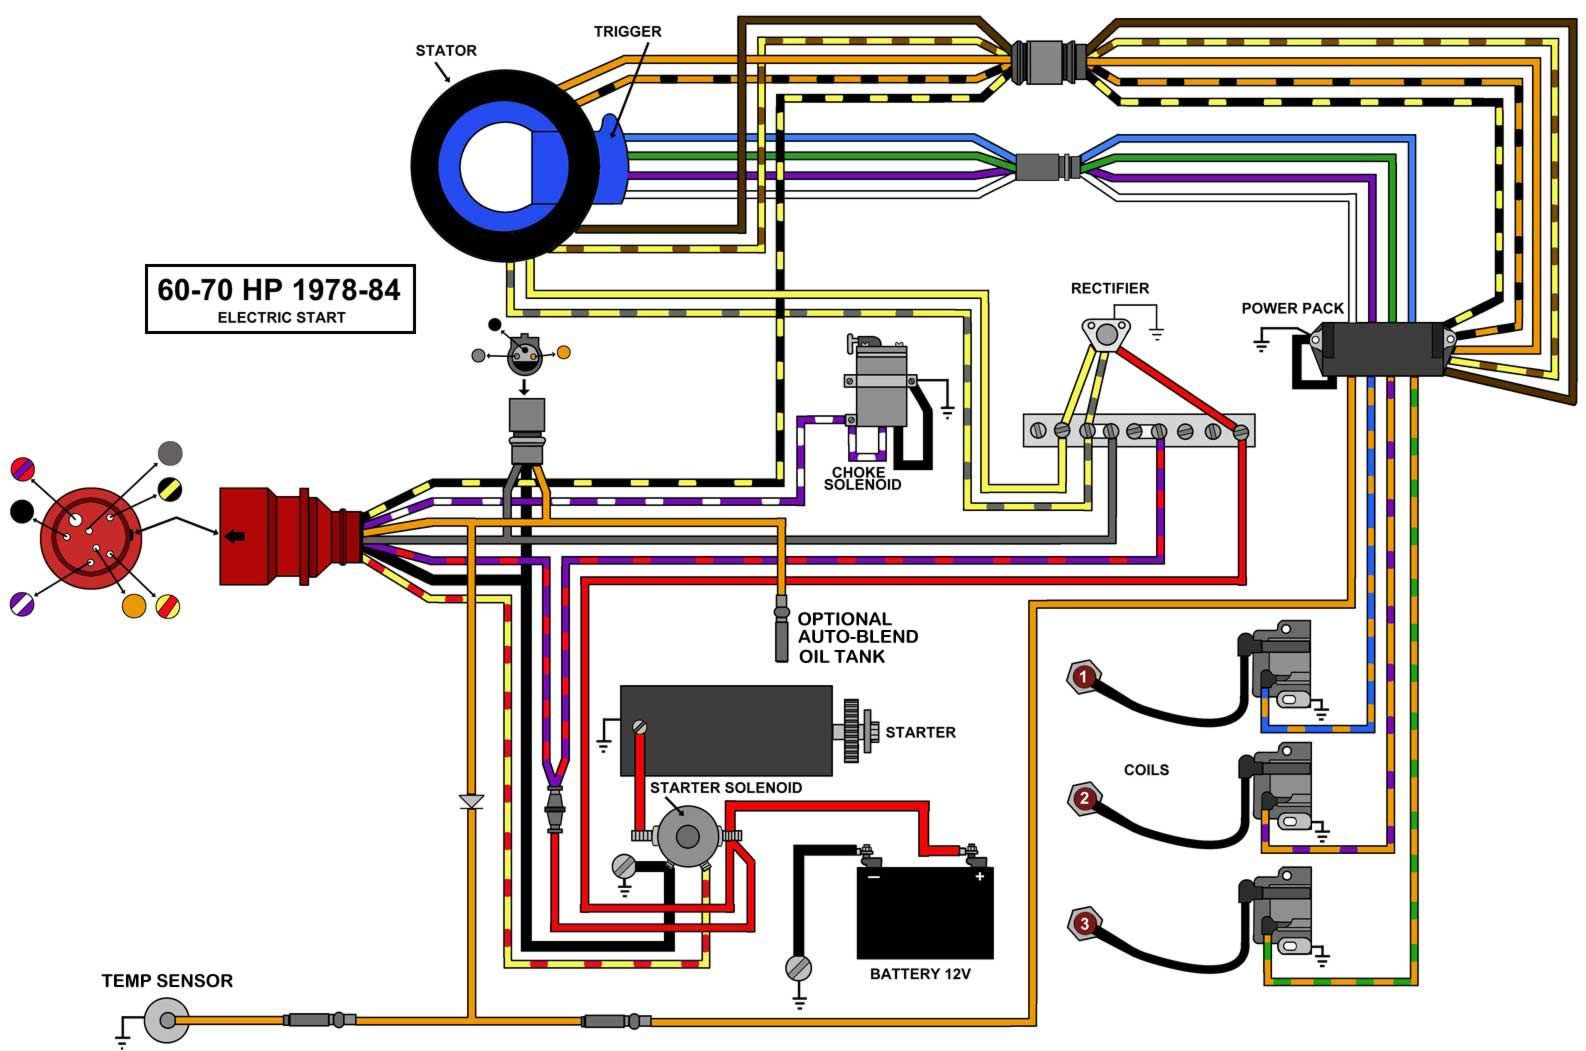 medium resolution of image result for 70 hp johnson 1988 wiring to tachometer etc diagram johnson controls lube oil control wiring diagram johnson control wiring diagram